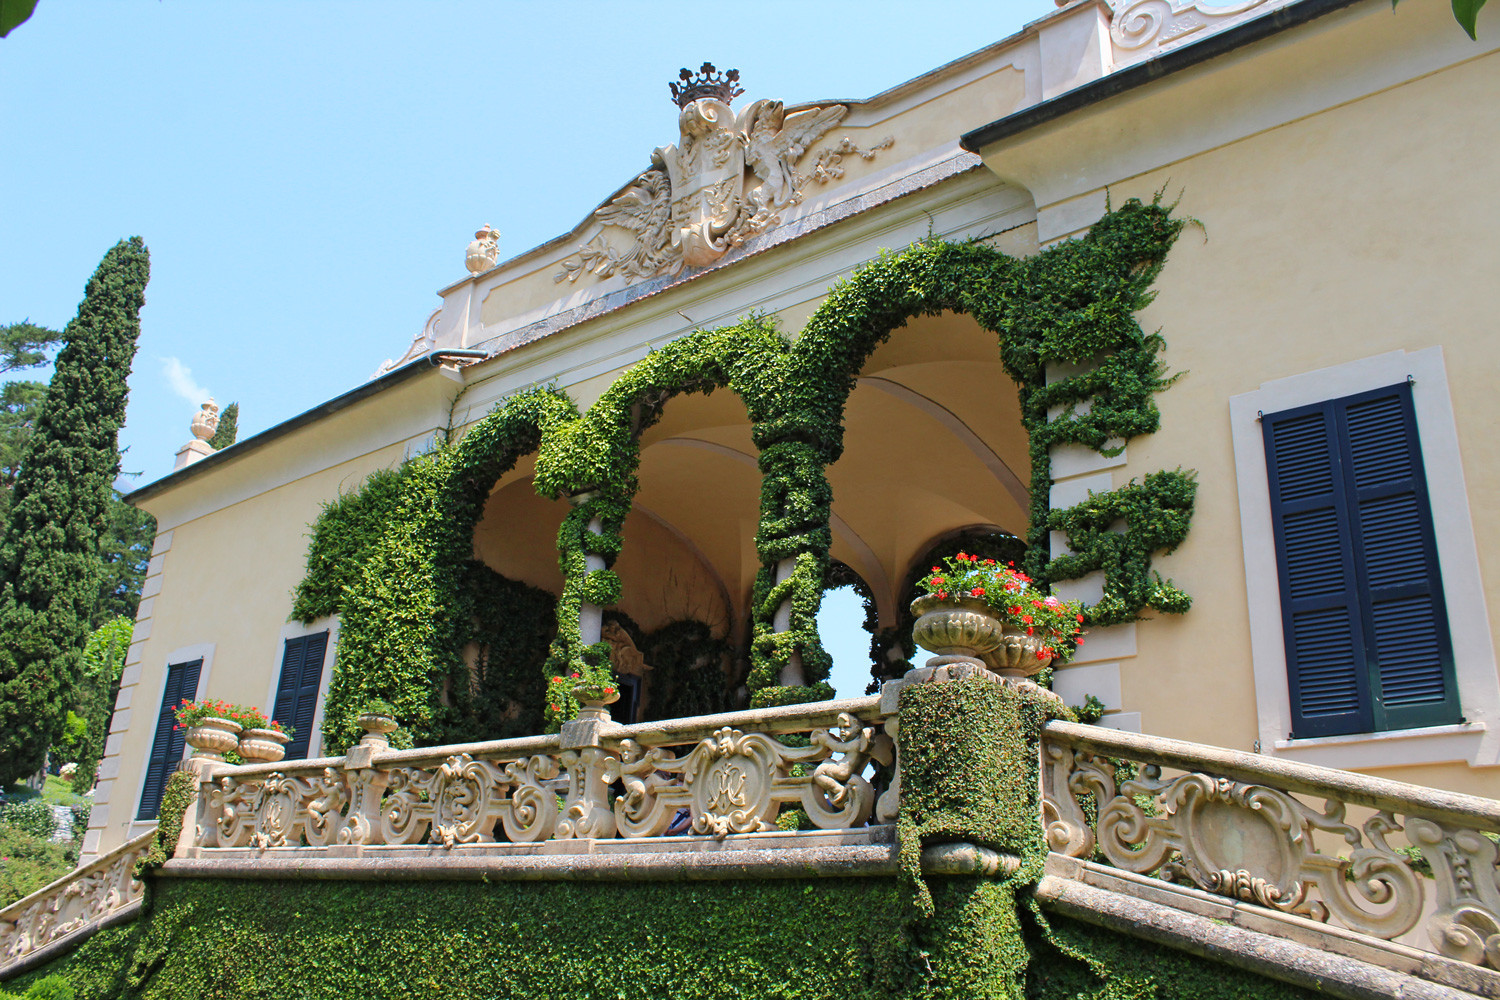 A WEEKEND AT LAKE COMO: TRAVEL GUIDE VILLA BALBIANELLO